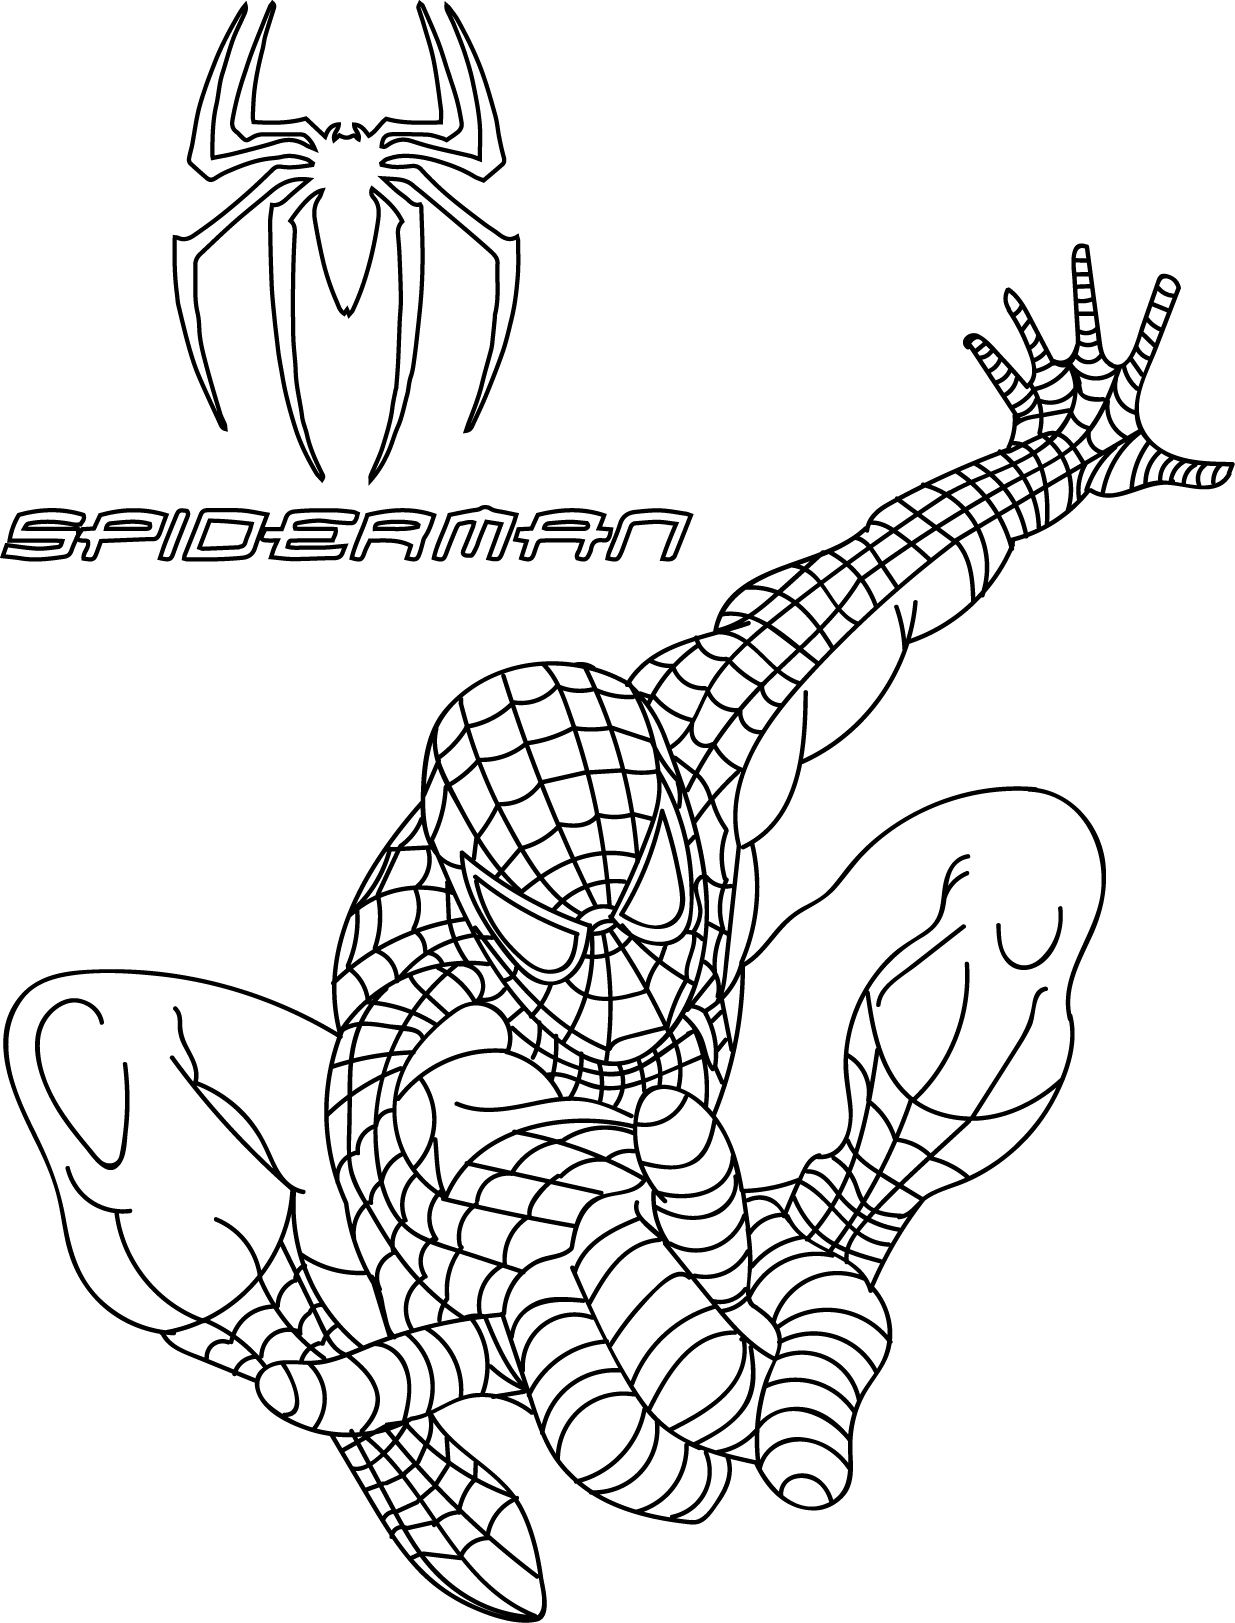 Spiderman Coloring Pages Wecoloringpage Spiderman Coloring Coloring Book Pages Coloring Pages